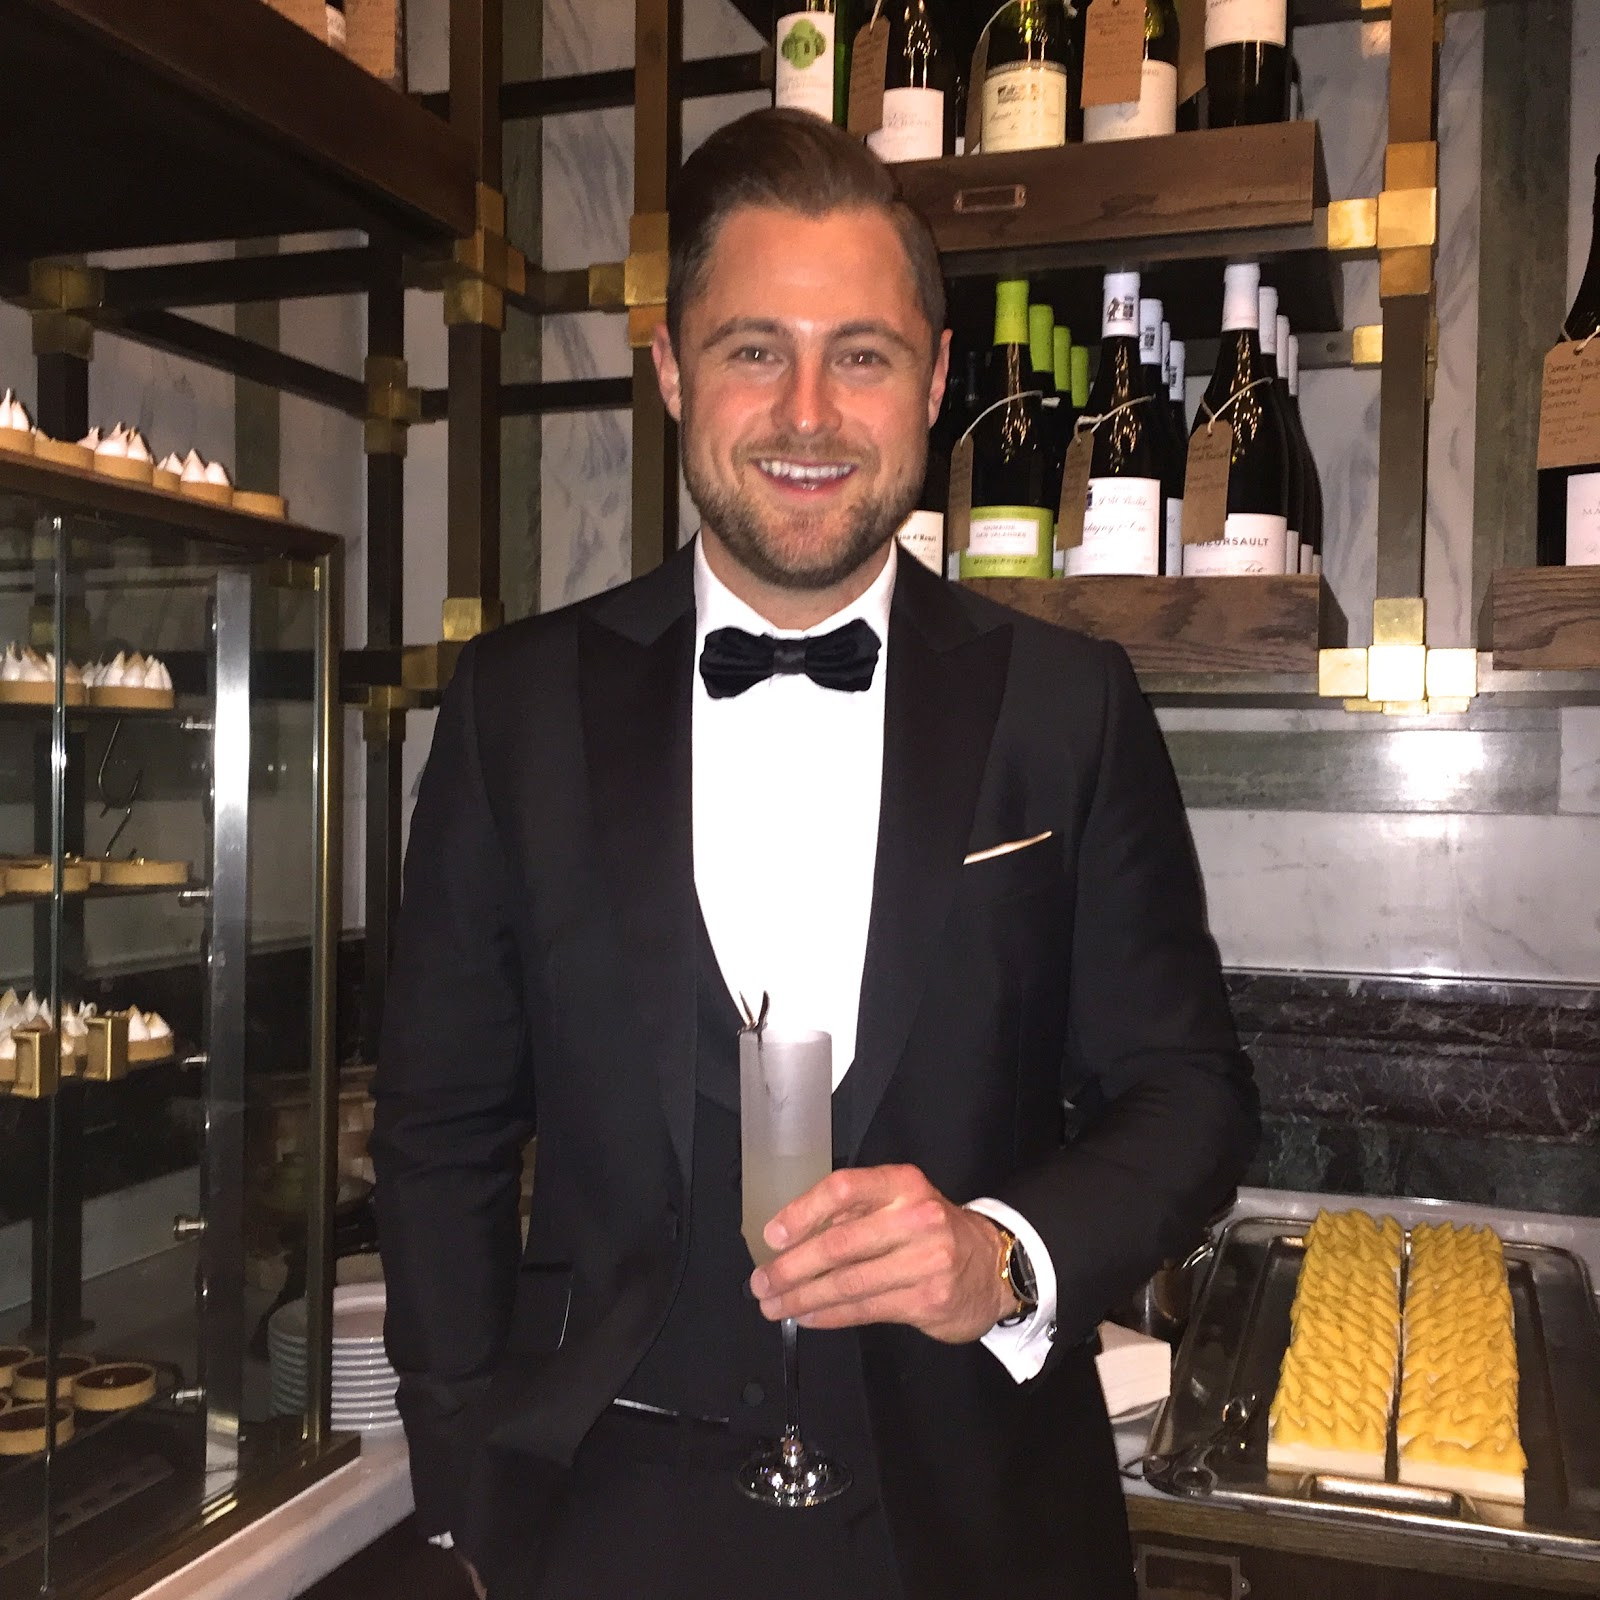 Man wearing Tuxedo and holding a cocktail at the BAFTA's Harvey Weinstein Afterparty 2016